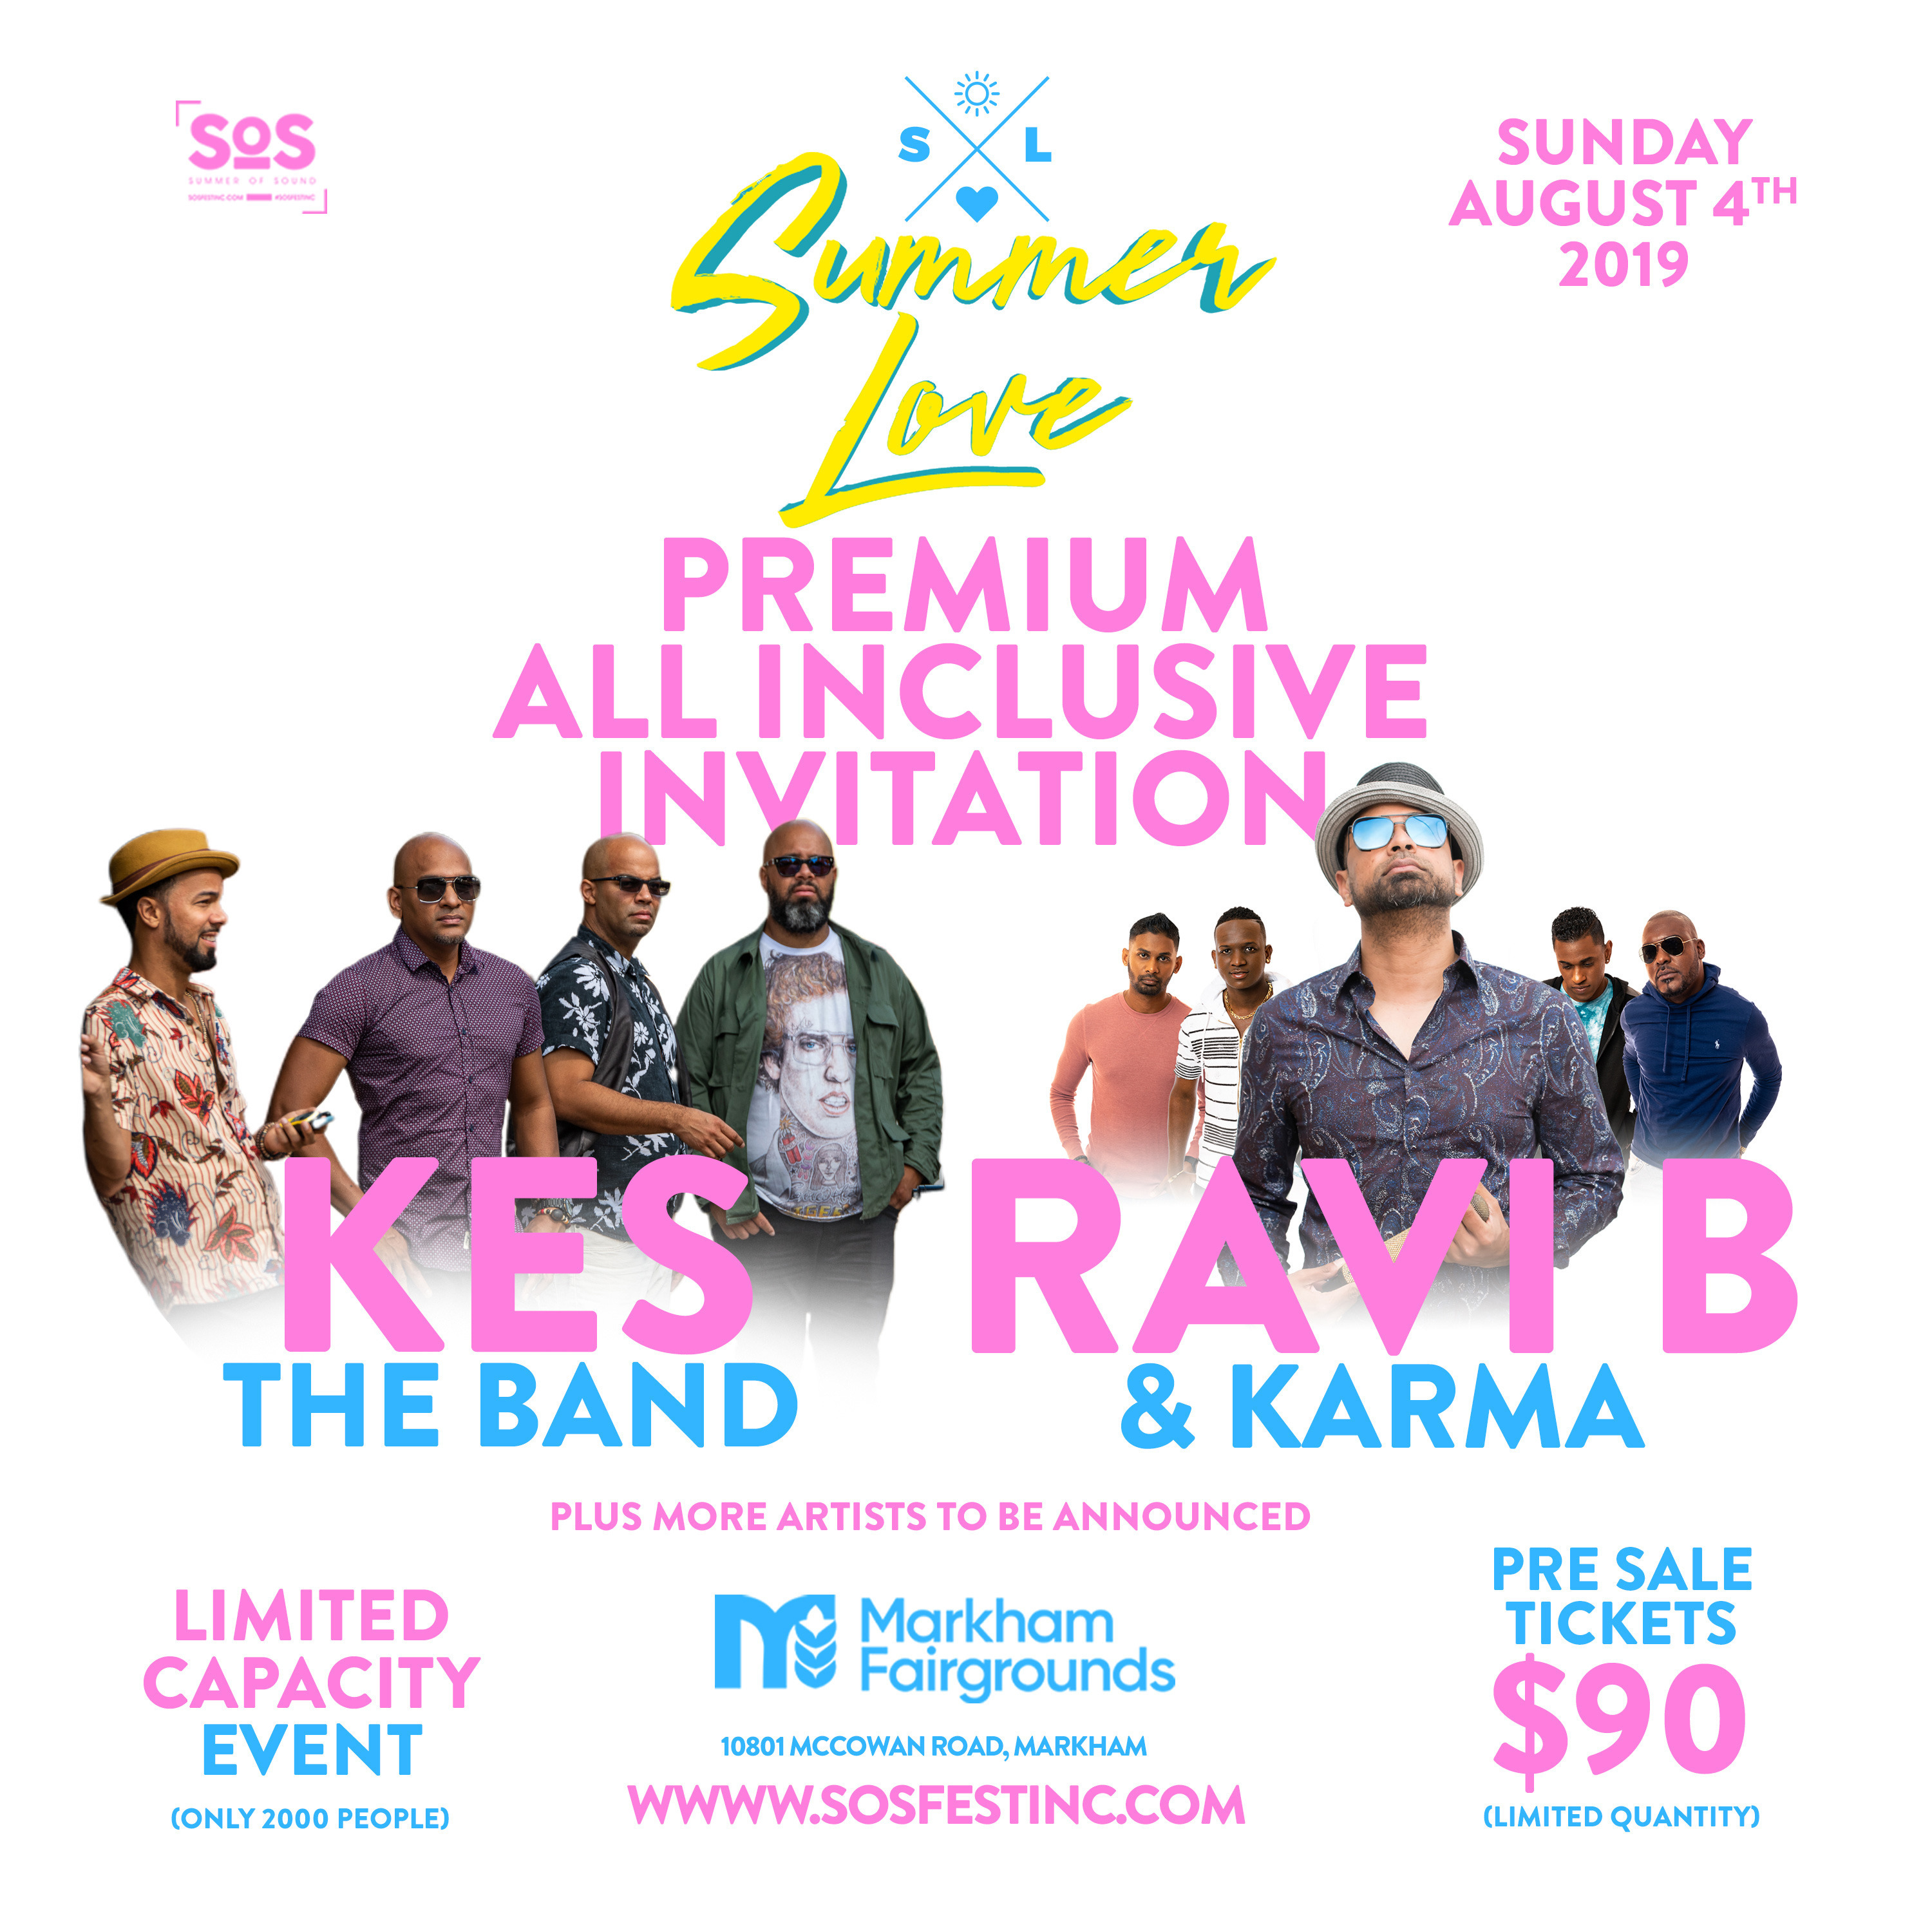 SUMMER LOVE   A PREMIUM ALL INCLUSIVE CONCERT EVENT W/ KES THE BAND & MORE